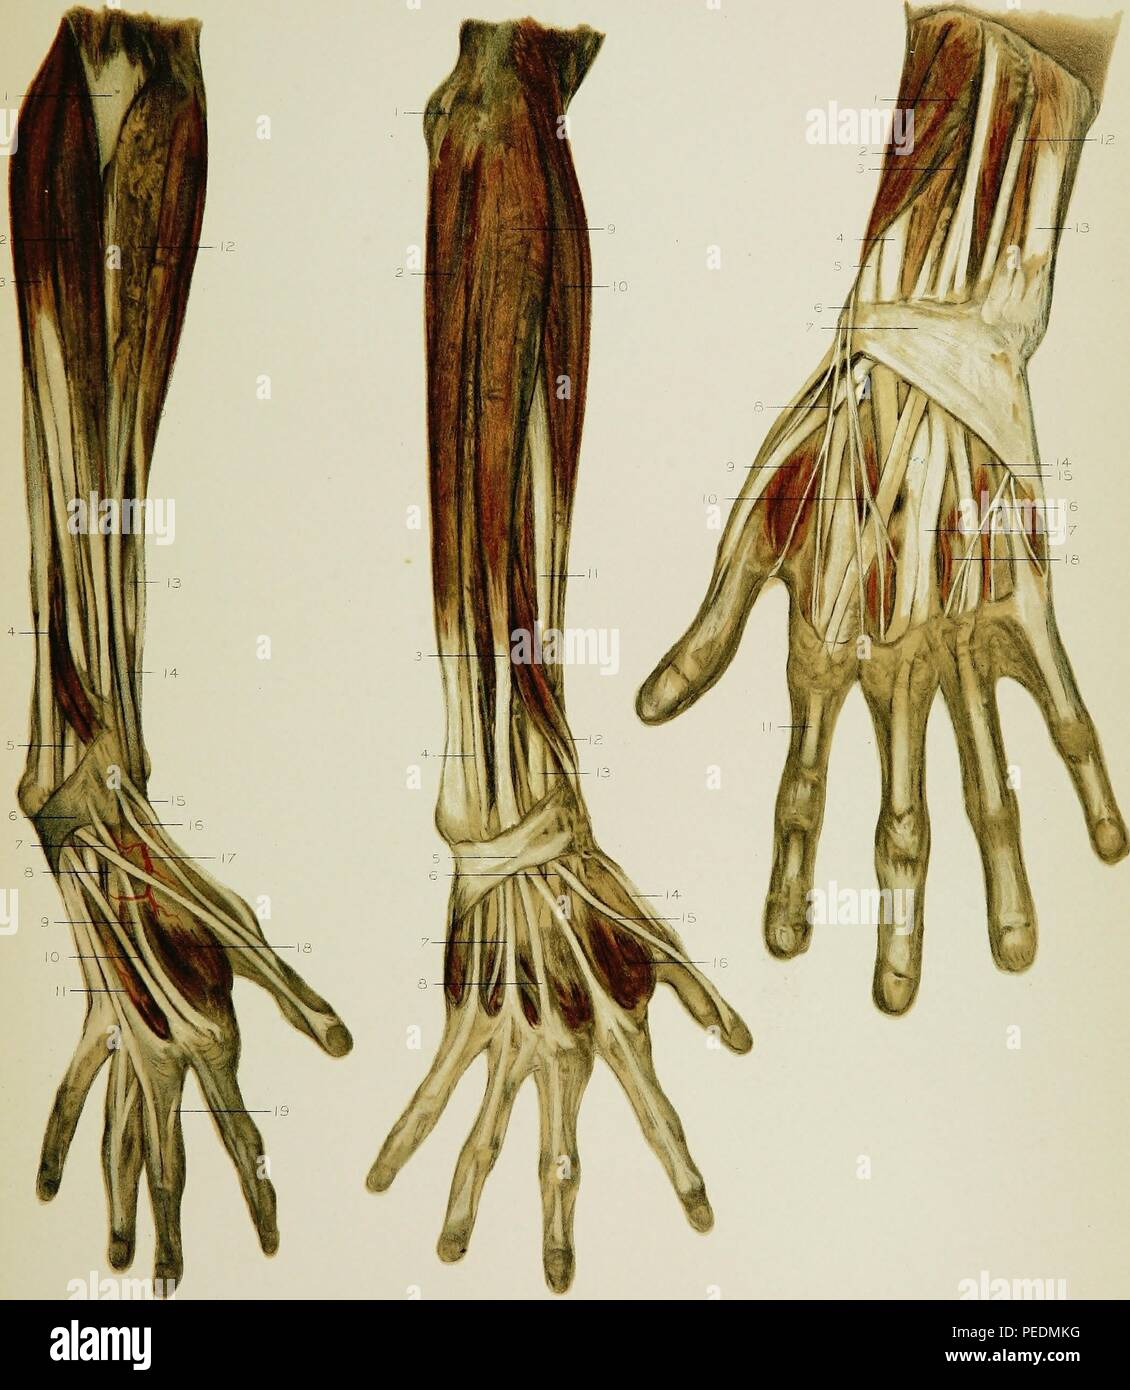 Color print illustrating the anatomy of the human arm and hand, focusing on the superficial musculature, 1891. Courtesy Internet Archive. () - Stock Image